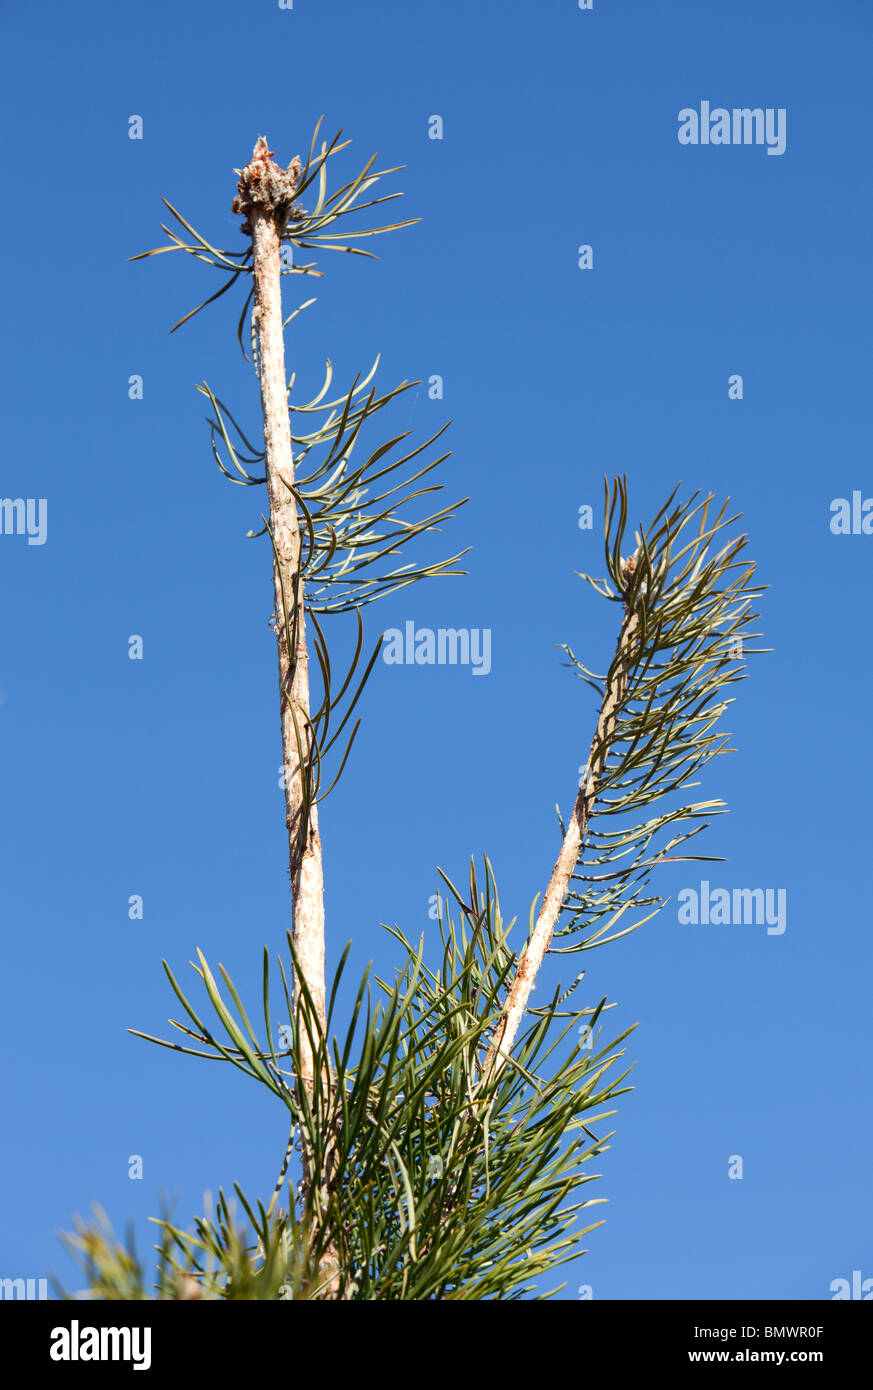 Pine ( pinus sylvestris ) sapling annual shoot's bark eaten away by a field vole ( Microtus agrestis ) - Stock Image